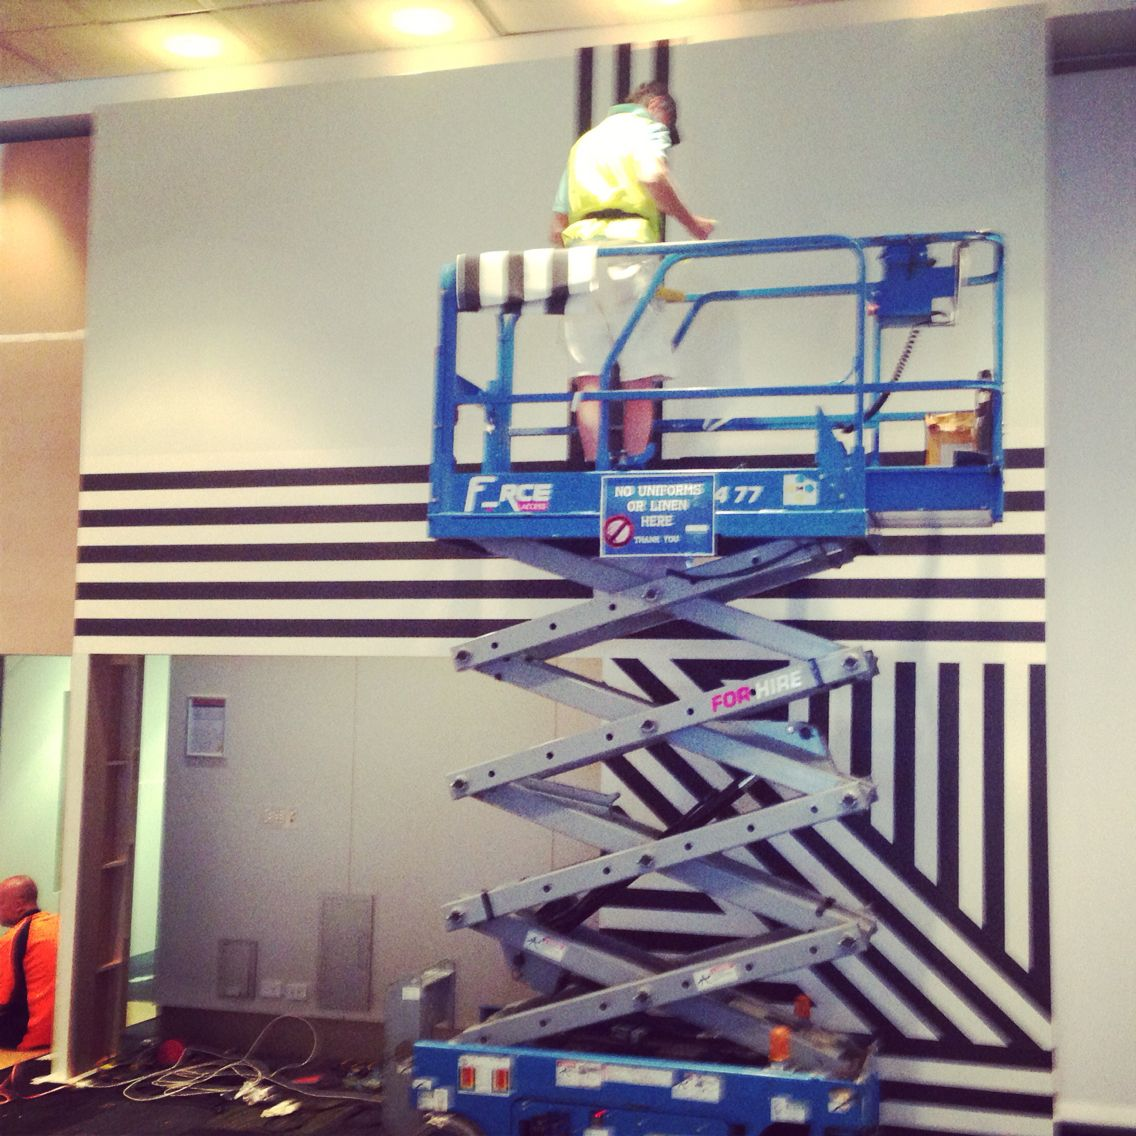 Getting Creative With Striped Wallpaper Installation By Cuttingedgewallpaperingau